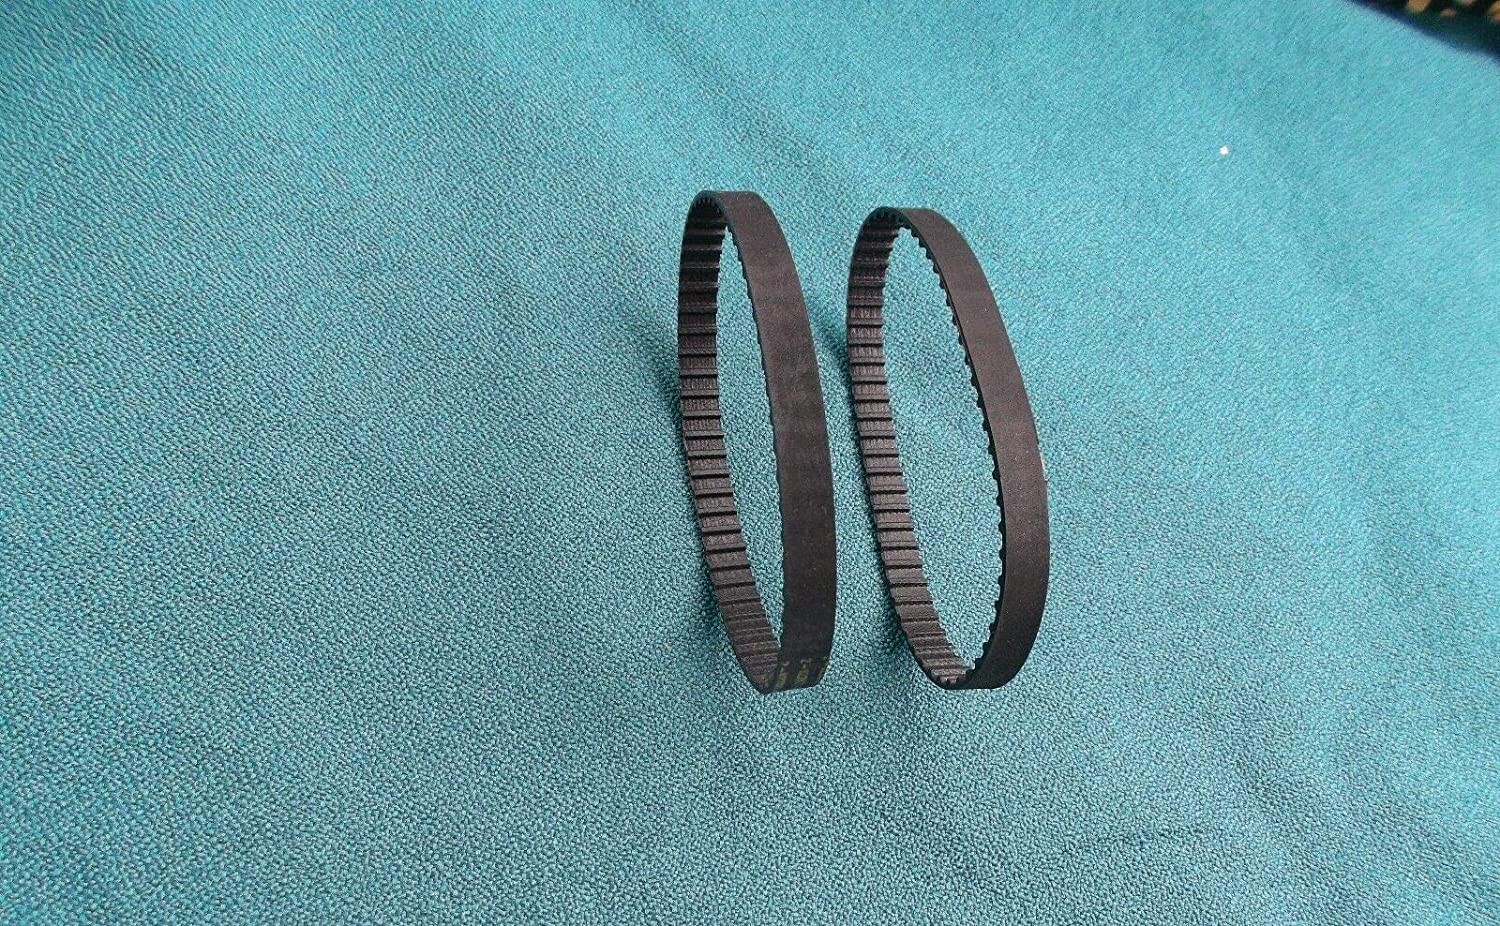 2 NEW DRIVE BELTS FOR SEARS ROEBUCK UTILITY SHARPENER 21170 Drill ...